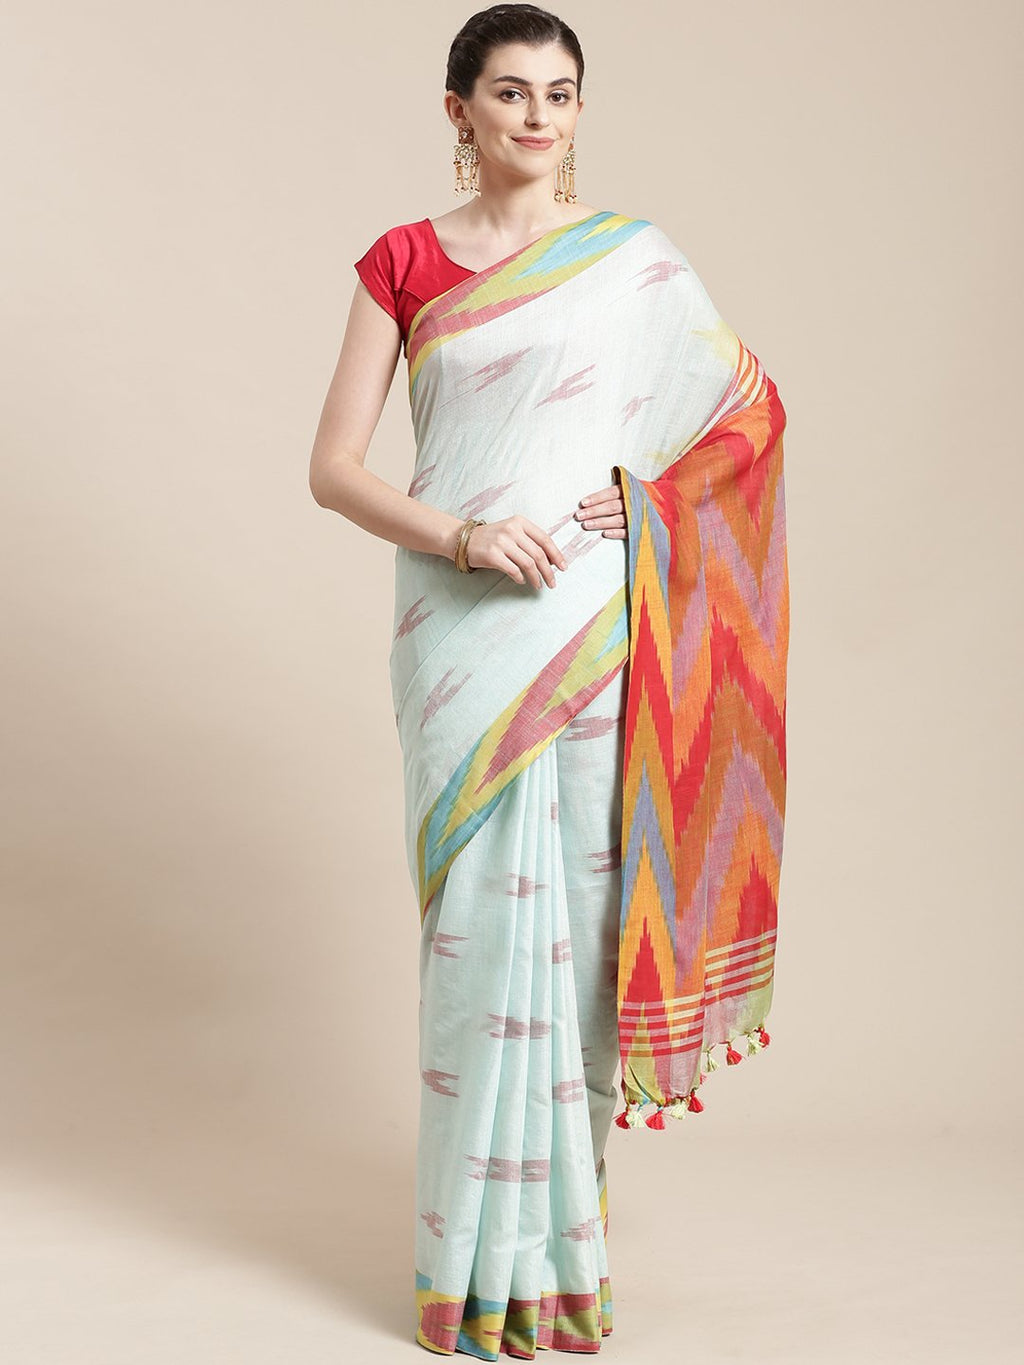 Linen Handwoven Saree and Blouse-Saree-Kalakari India-ALBGSA0034-Hand Woven, Linen, Sarees, Sustainable Fabrics, Traditional Weave-[Linen,Ethnic,wear,Fashionista,Handloom,Handicraft,Indigo,blockprint,block,print,Cotton,Chanderi,Blue, latest,classy,party,bollywood,trendy,summer,style,traditional,formal,elegant,unique,style,hand,block,print, dabu,booti,gift,present,glamorous,affordable,collectible,Sari,Saree,printed, holi, Diwali, birthday, anniversary, sustainable, organic, scarf, online, low pri